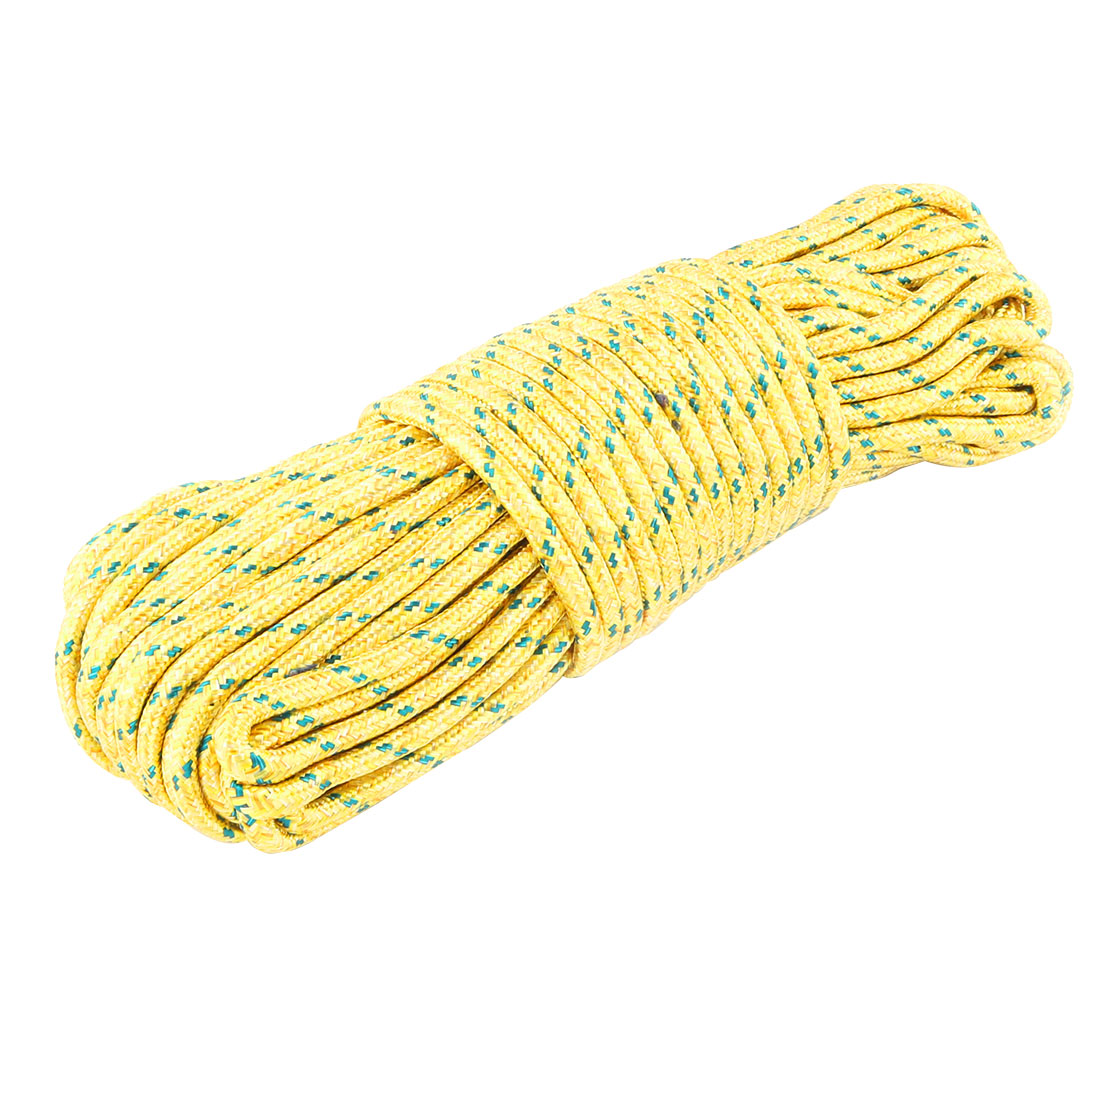 Home Nylon Hanging Nonslip Windproof Clothes Rope Clothesline Yellow 28m Long